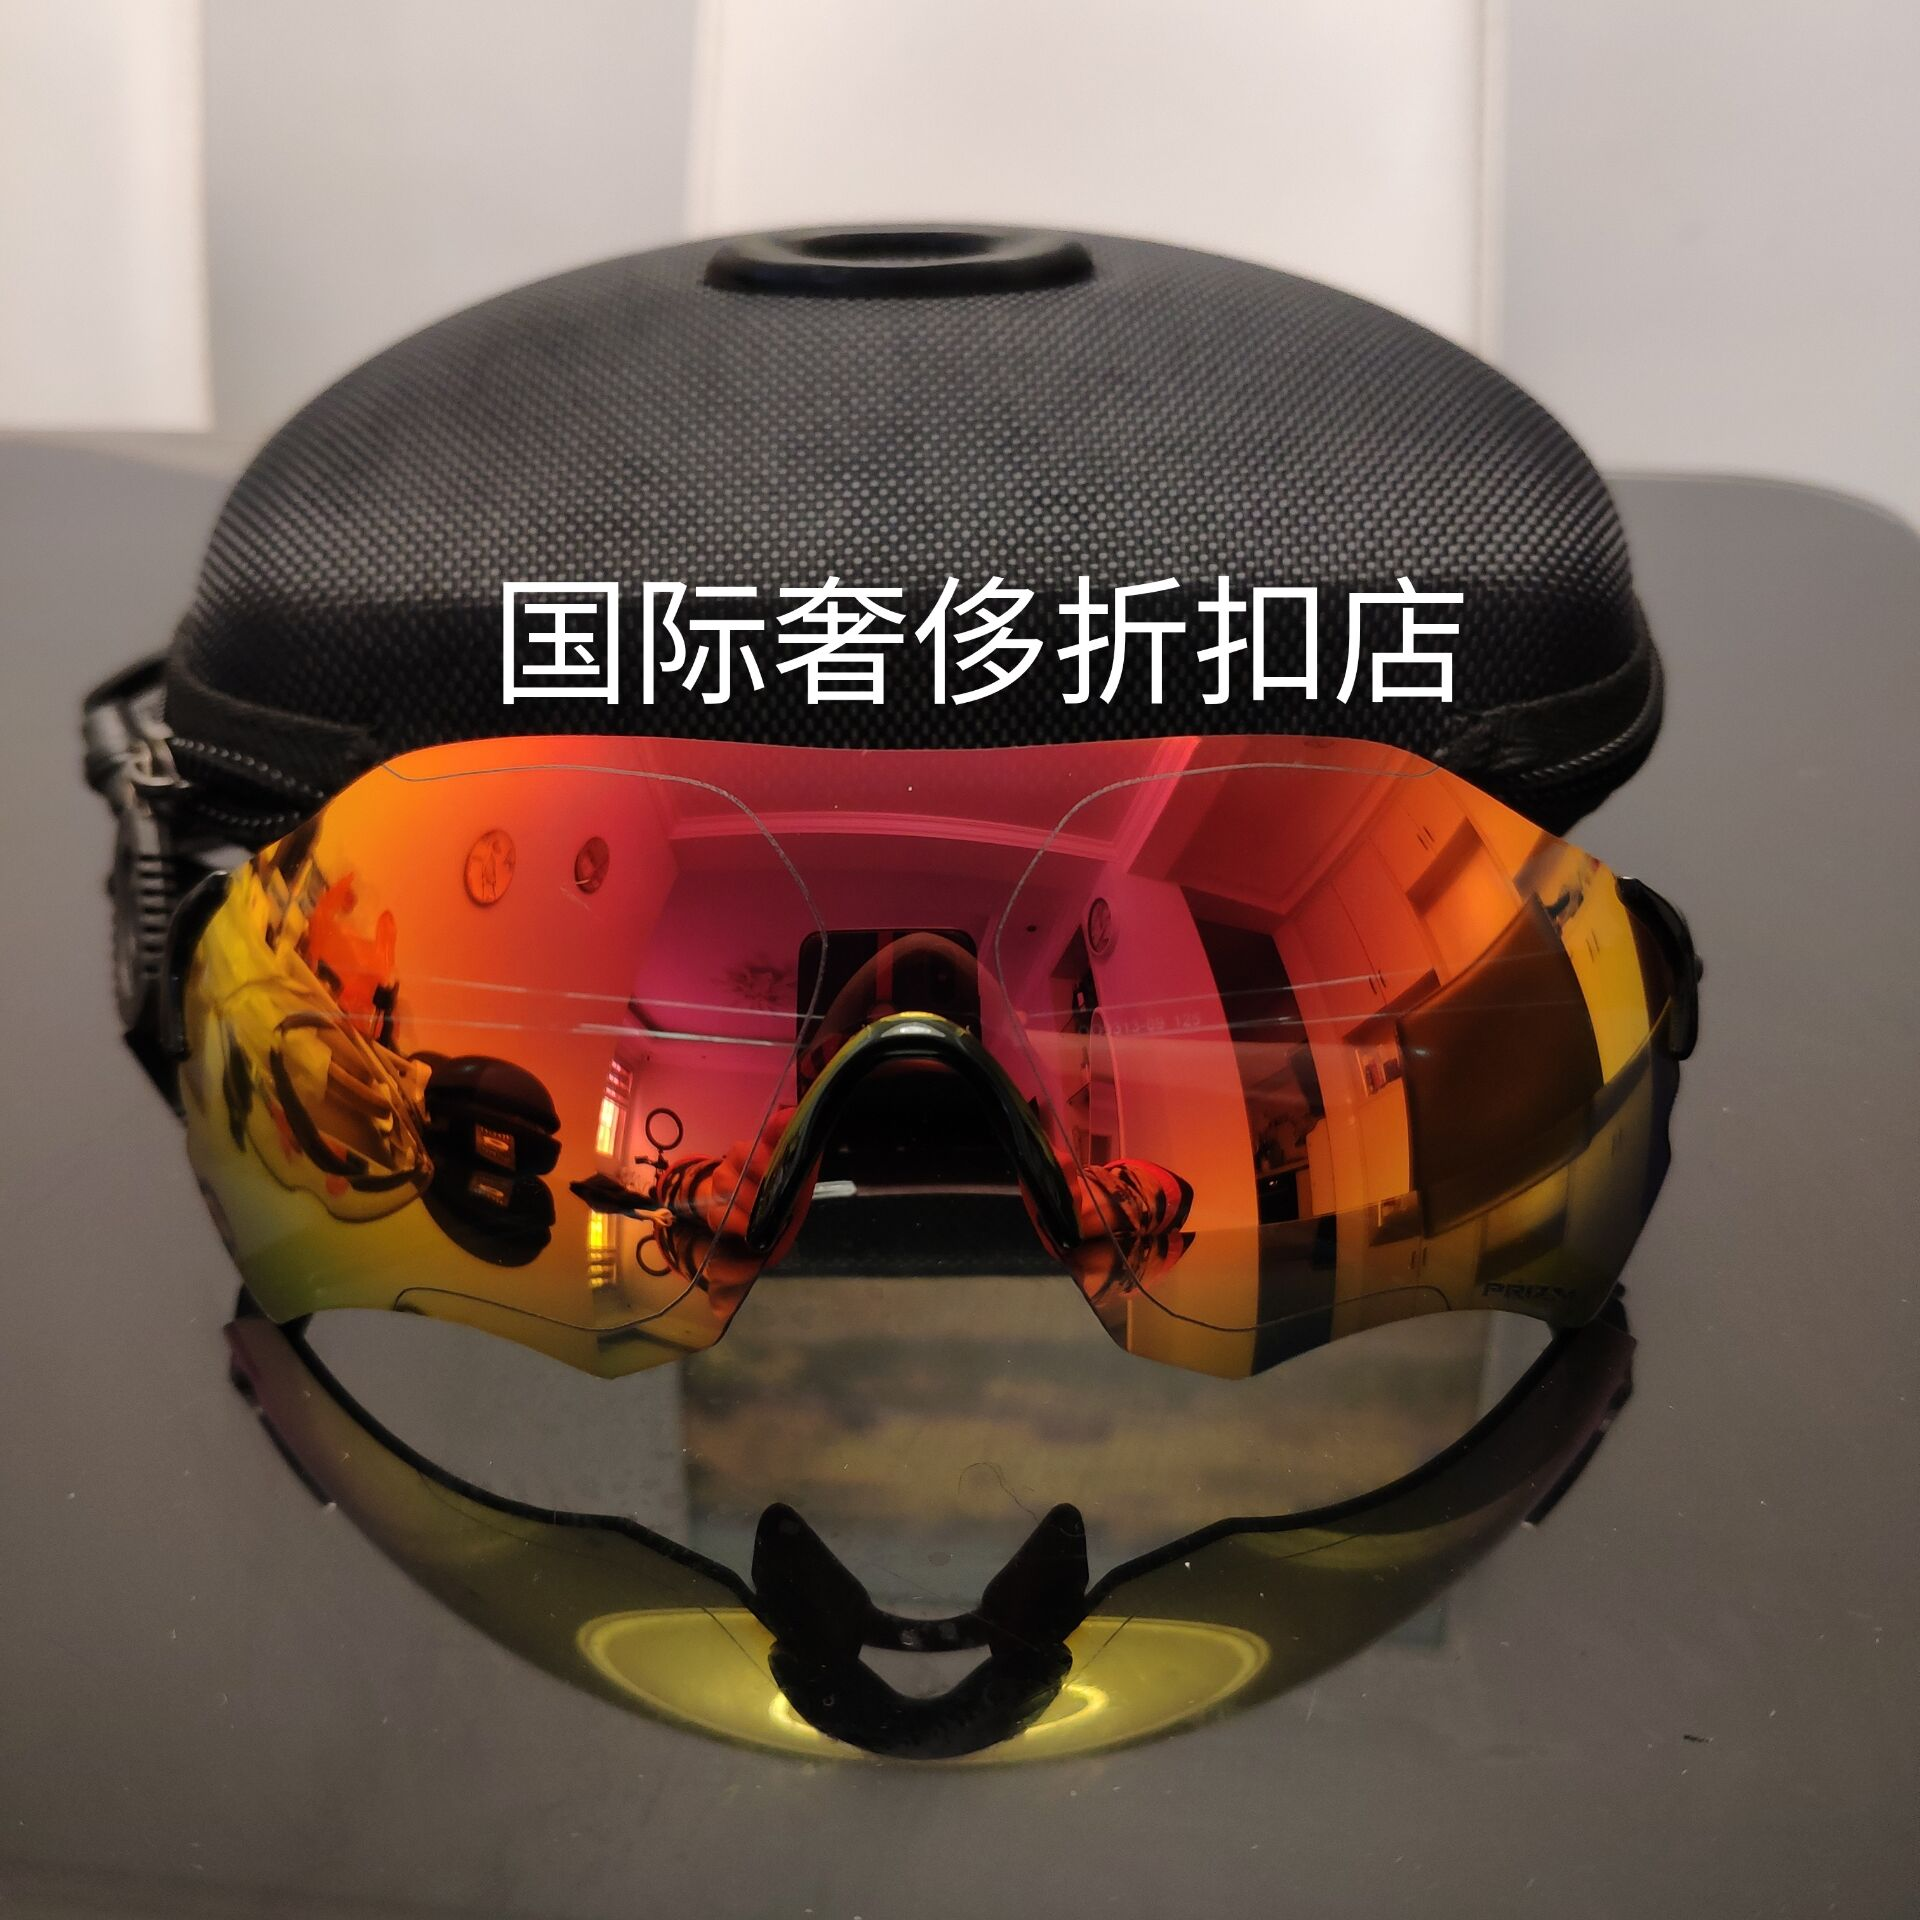 Oji mountain bike EV zero path polarized running riding light sports cover lens frameless Sunglasses large